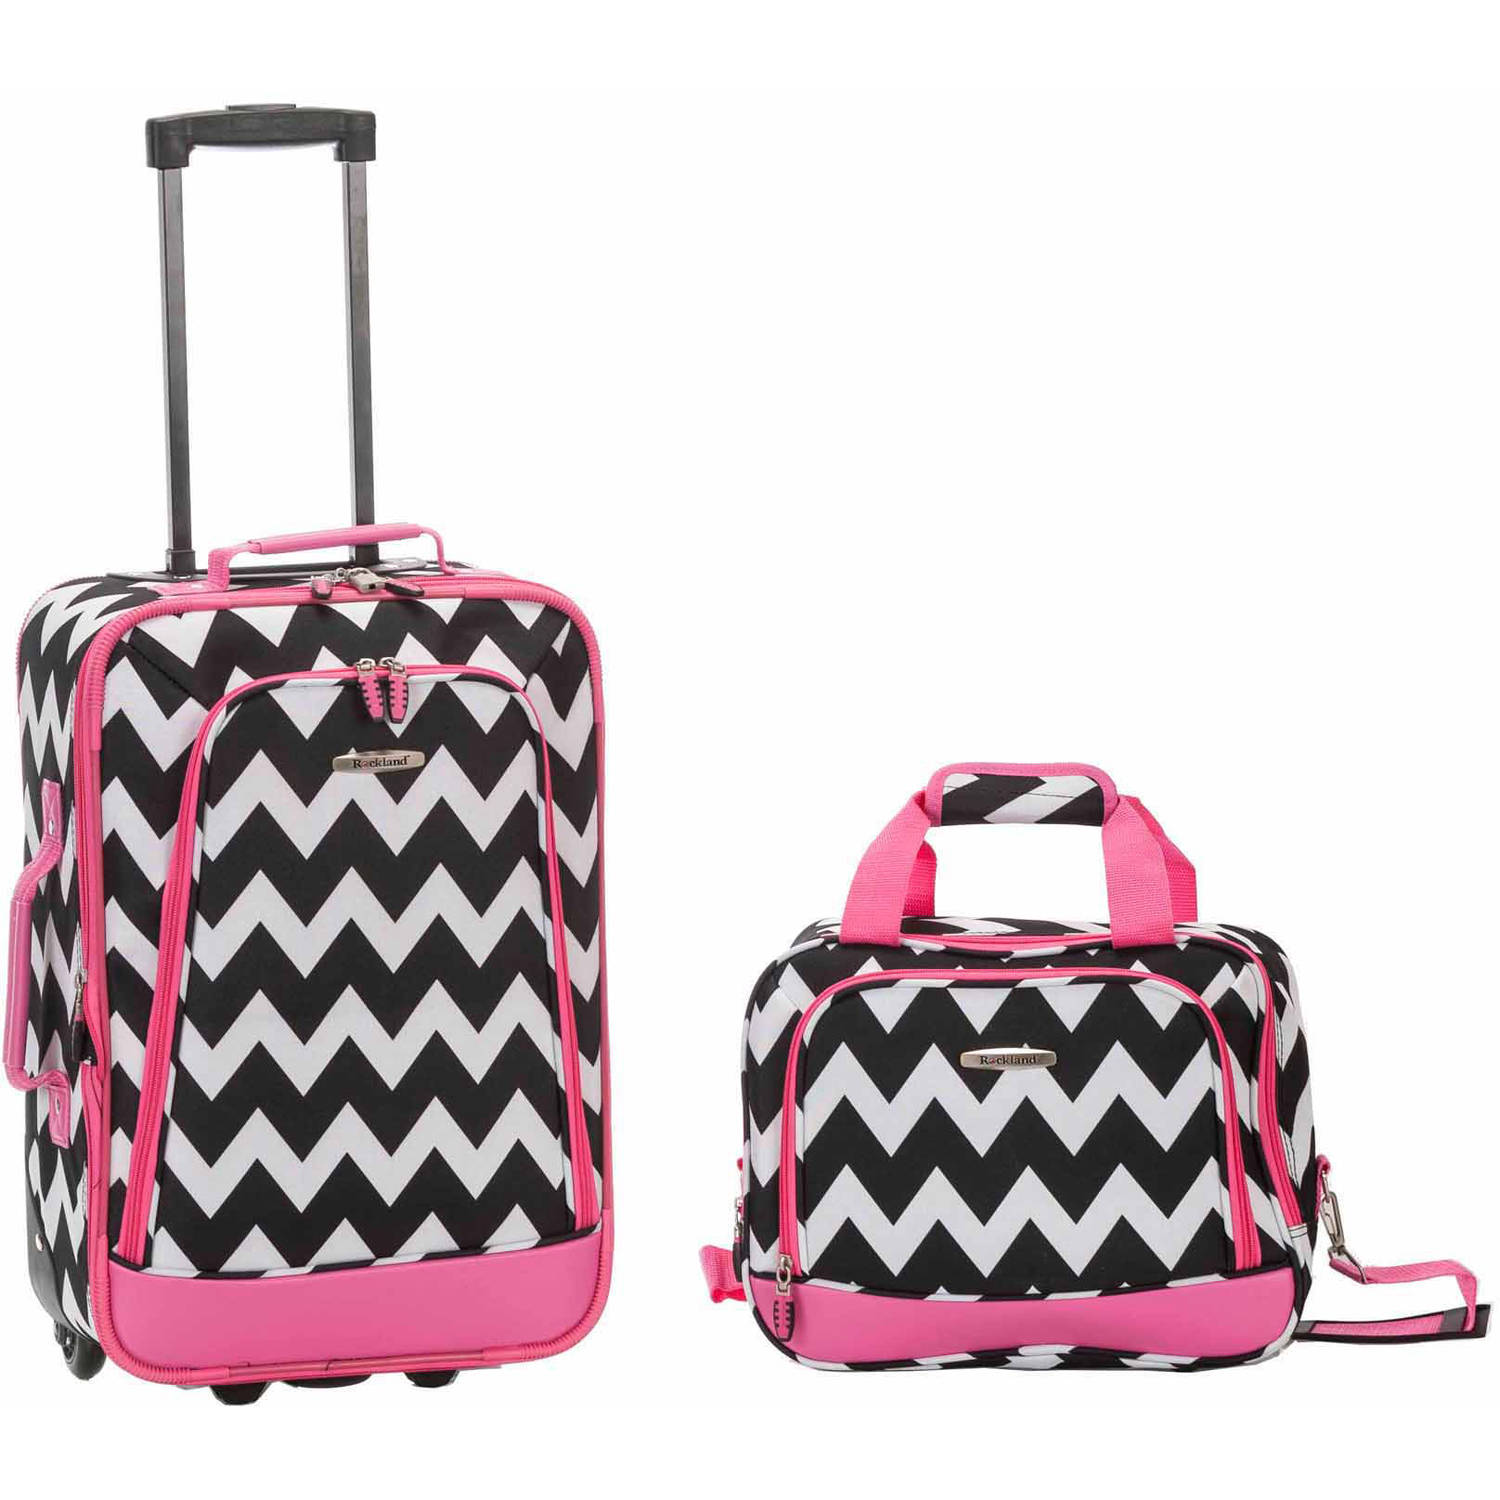 Rockland Luggage Rio 2-Piece Luggage Set